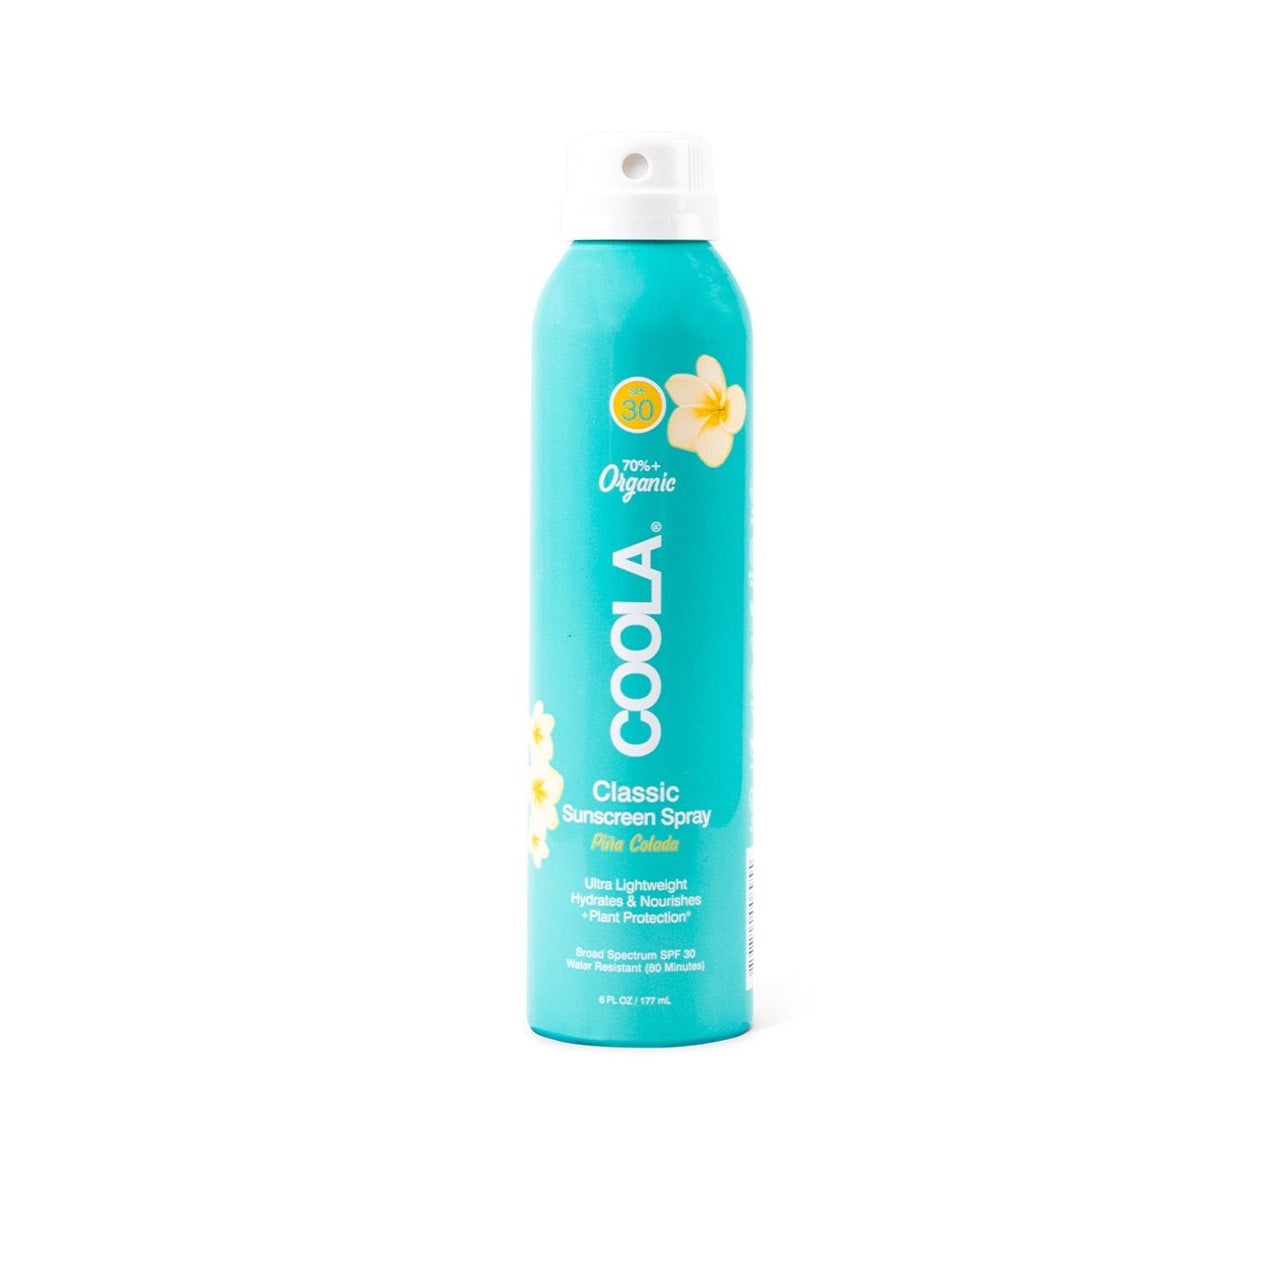 COOLA Classic Body SPF30 Pina Colada Sunscreen Spray